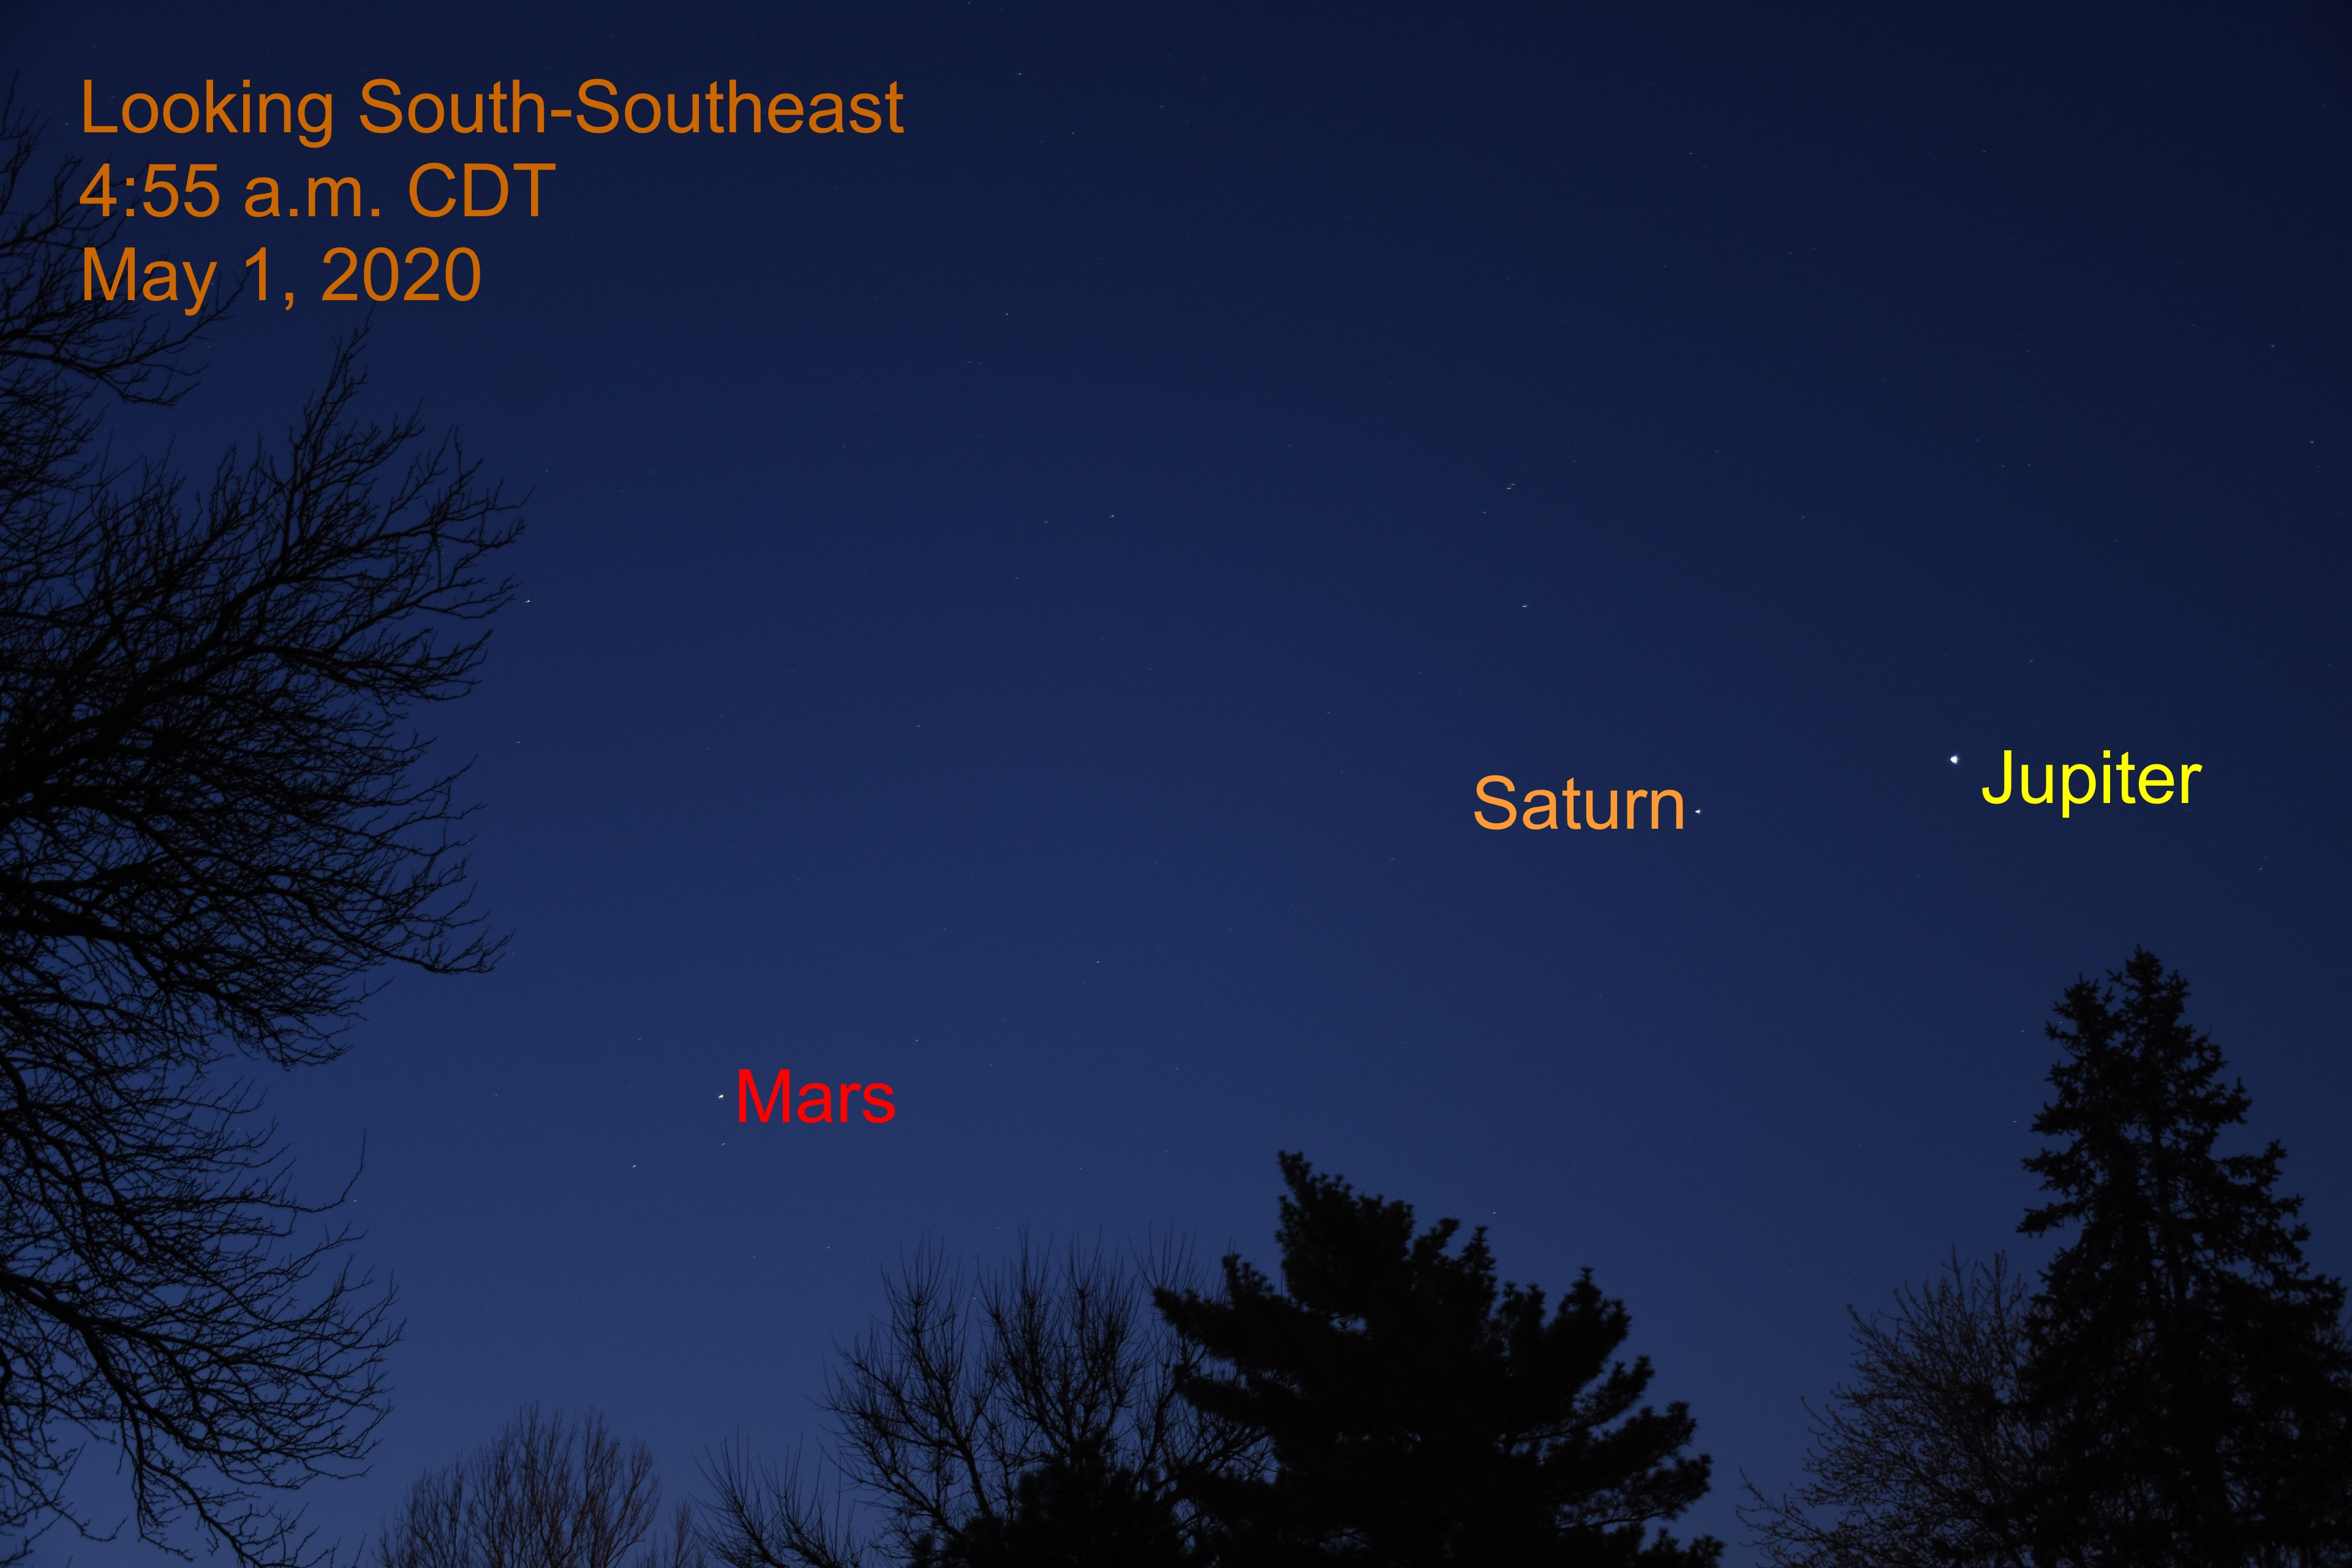 Morning Planets Jupiter, Saturn, and Mars, My 1, 2020